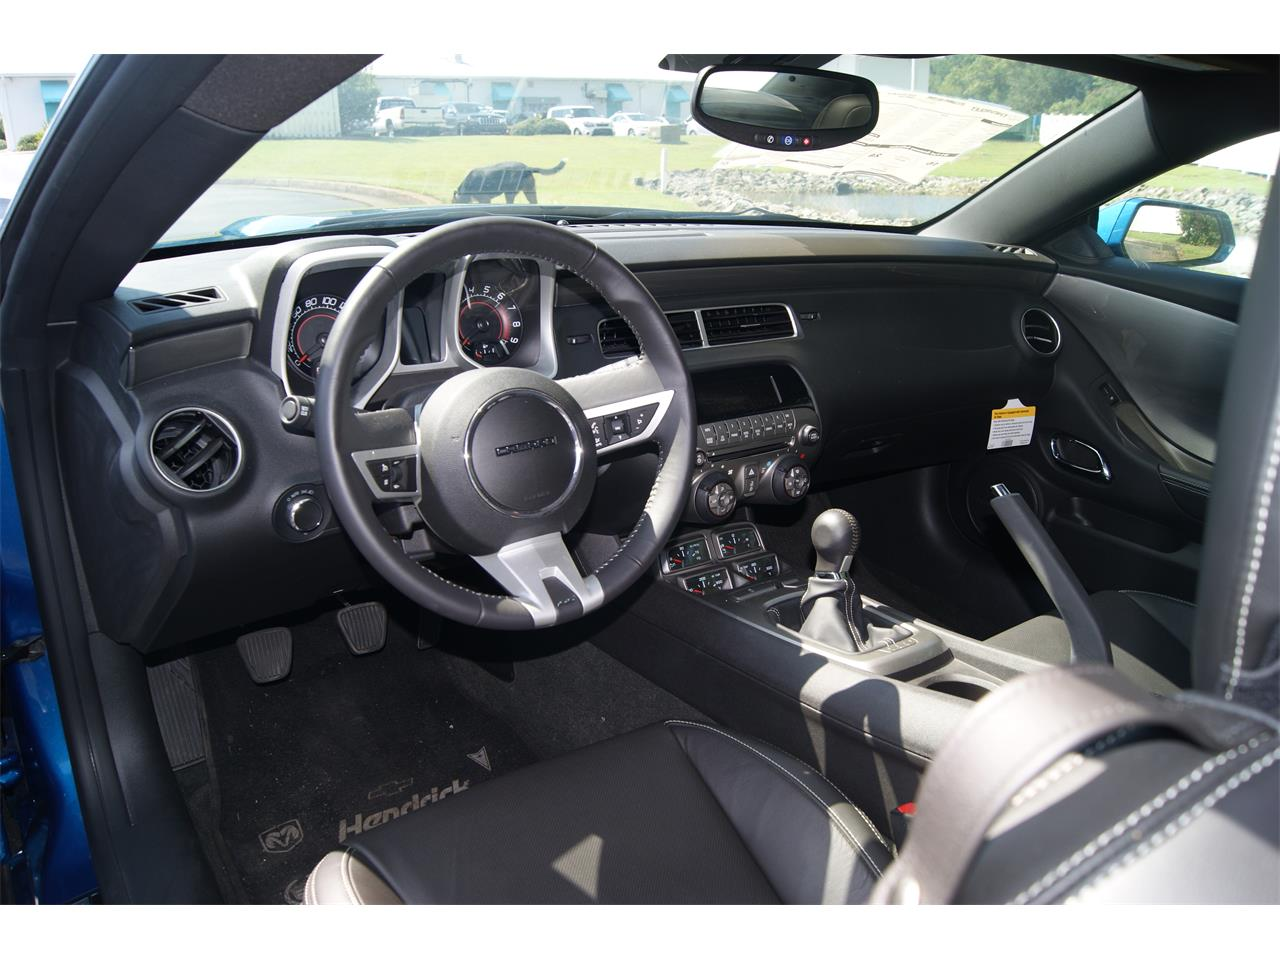 Large Picture of 2010 Camaro located in Wilmington North Carolina - $29,000.00 - Q77R